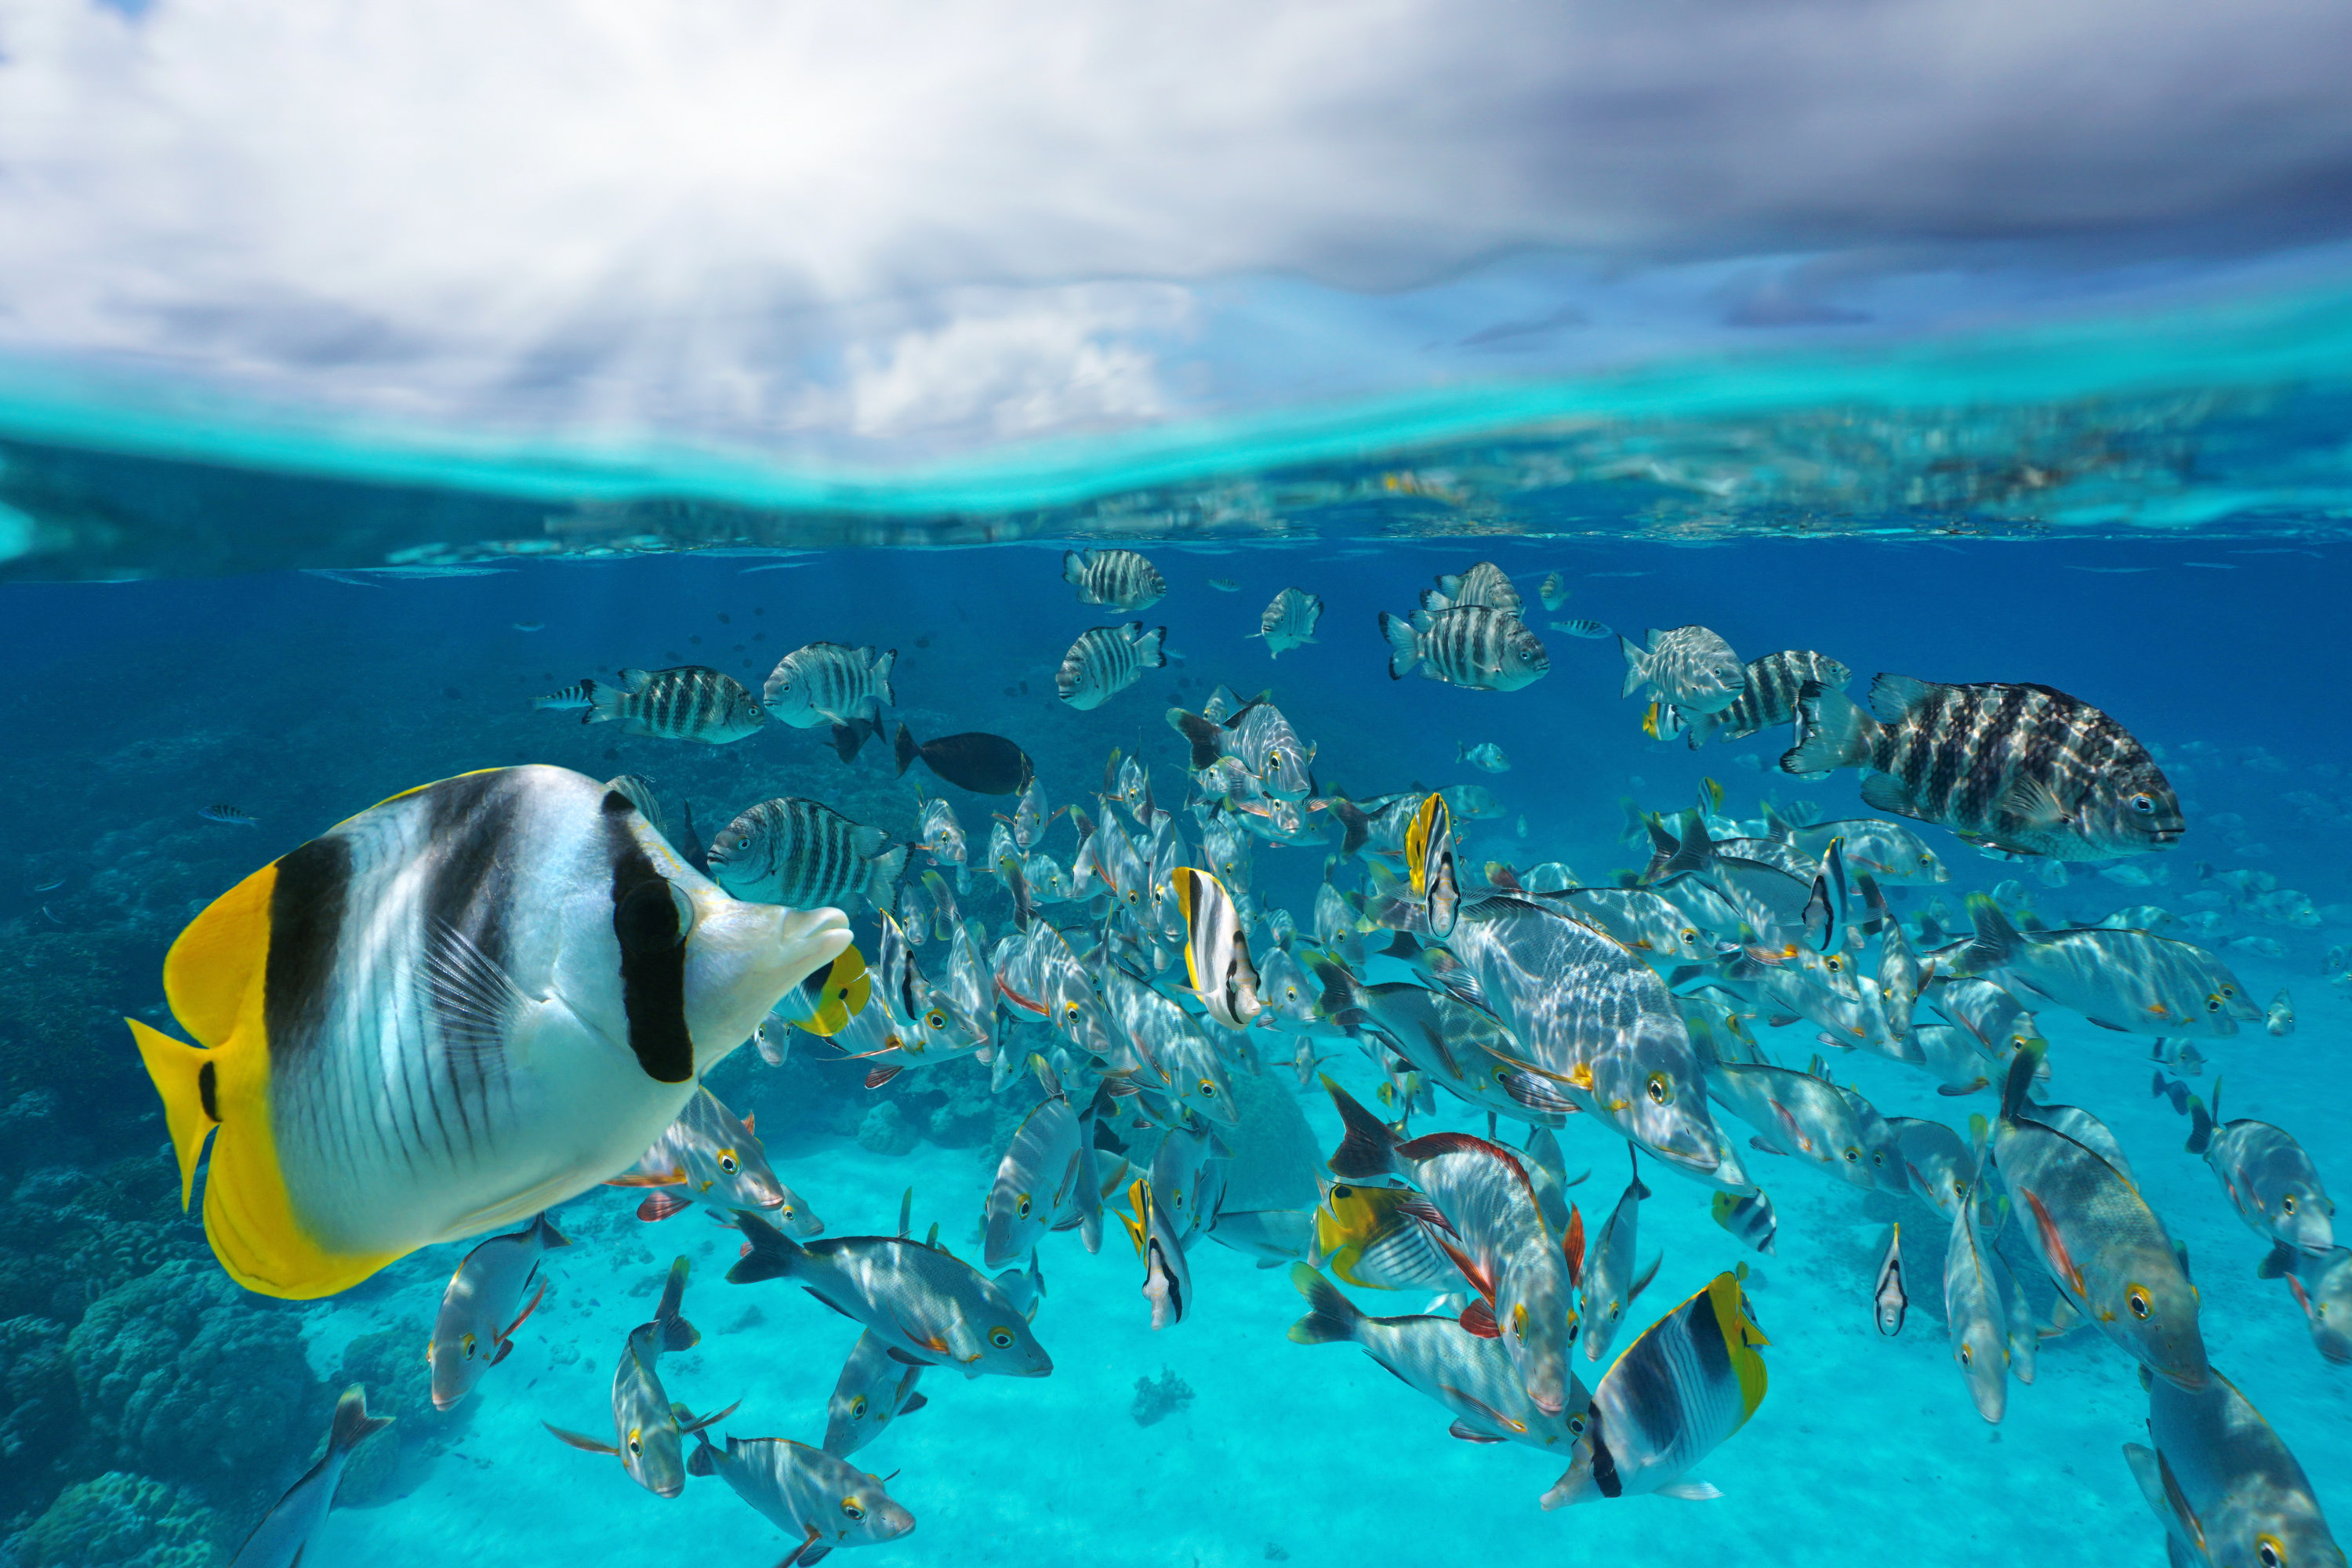 a school of different fish swimming near a coral reef